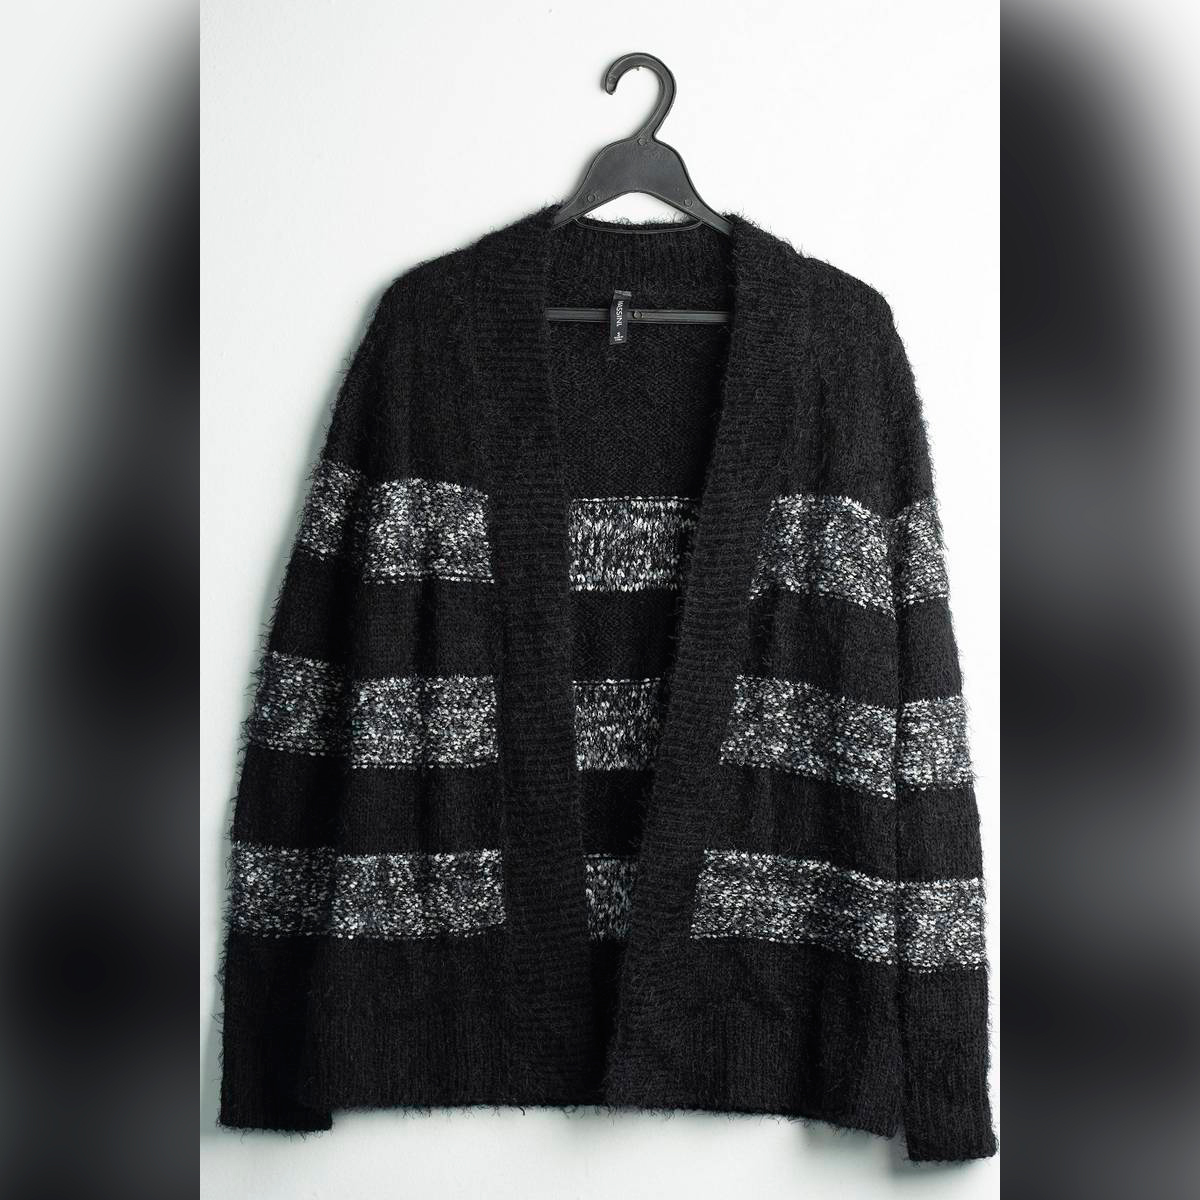 Black and Silver Cardigan